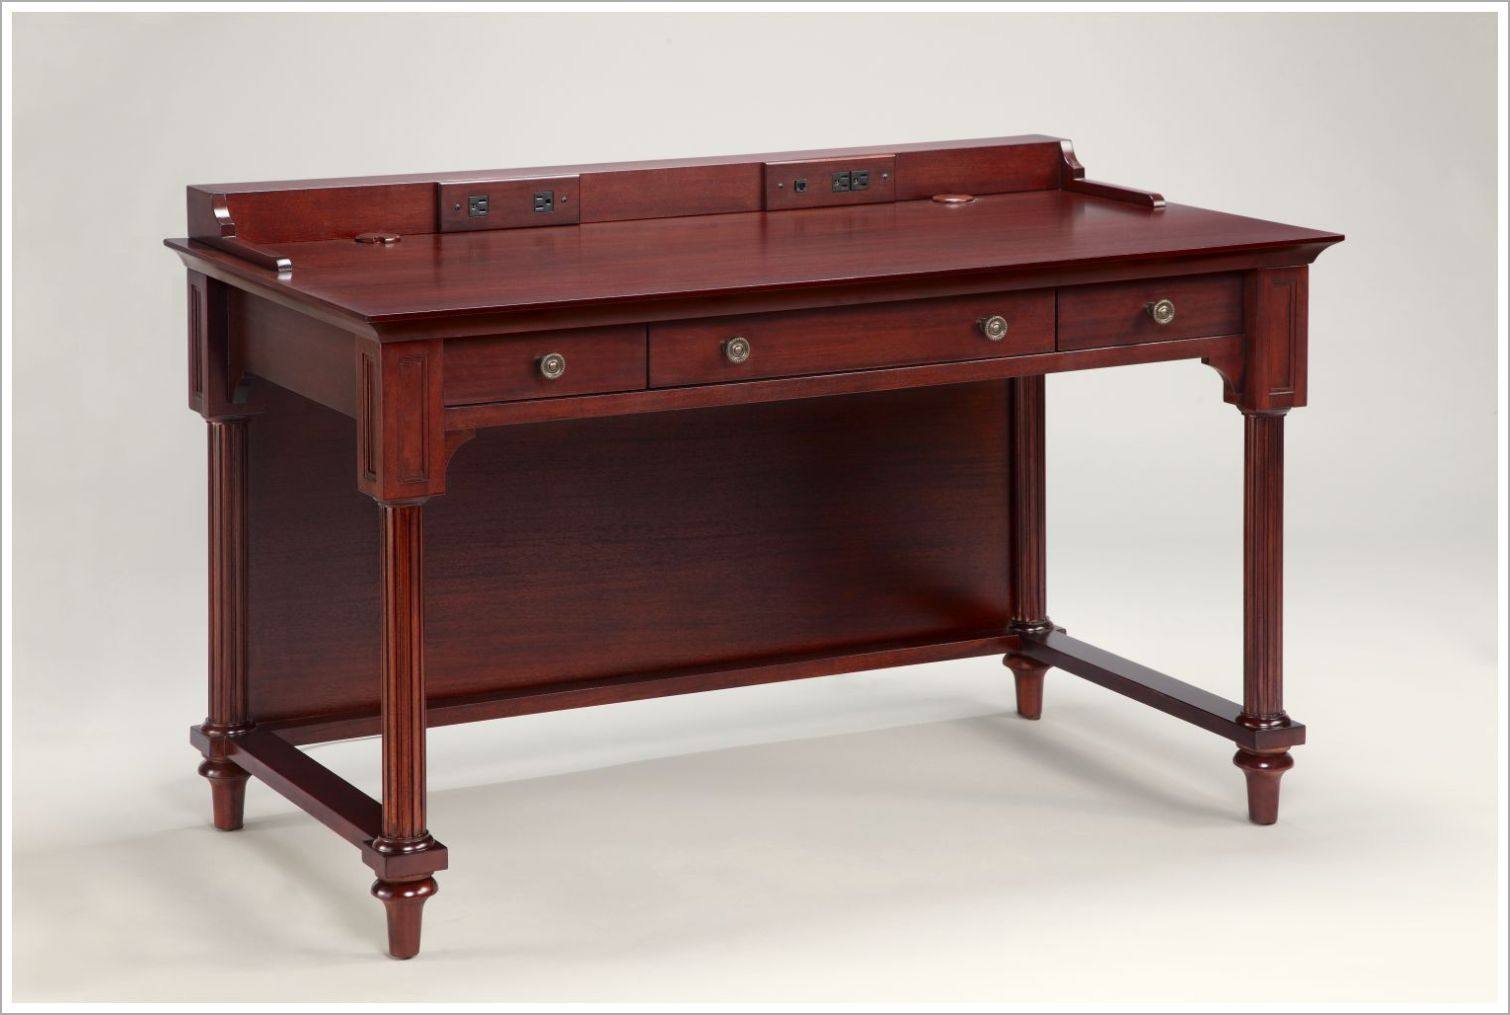 Custom Mahogany Hotel Desk with Built In Power Outlets and Data Jack